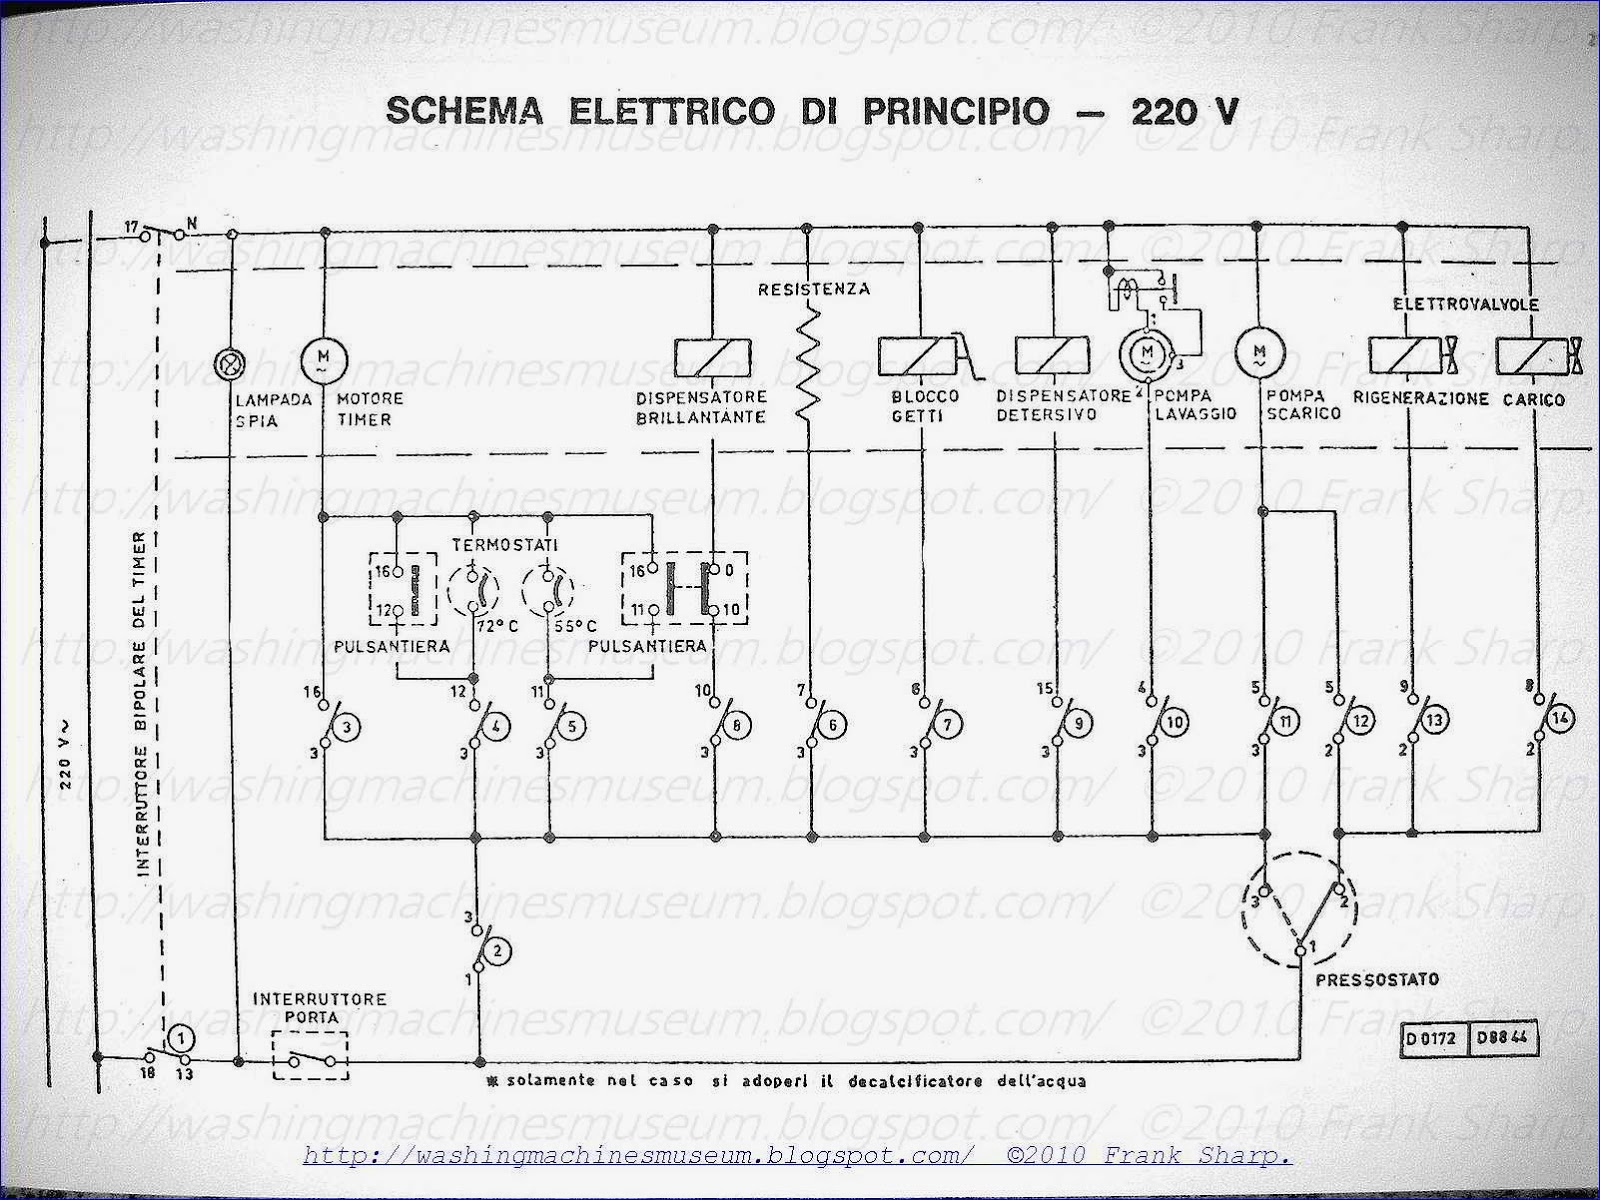 Hd wallpapers wiring diagram for zanussi oven love8designwall get free high quality hd wallpapers wiring diagram for zanussi oven swarovskicordoba Gallery